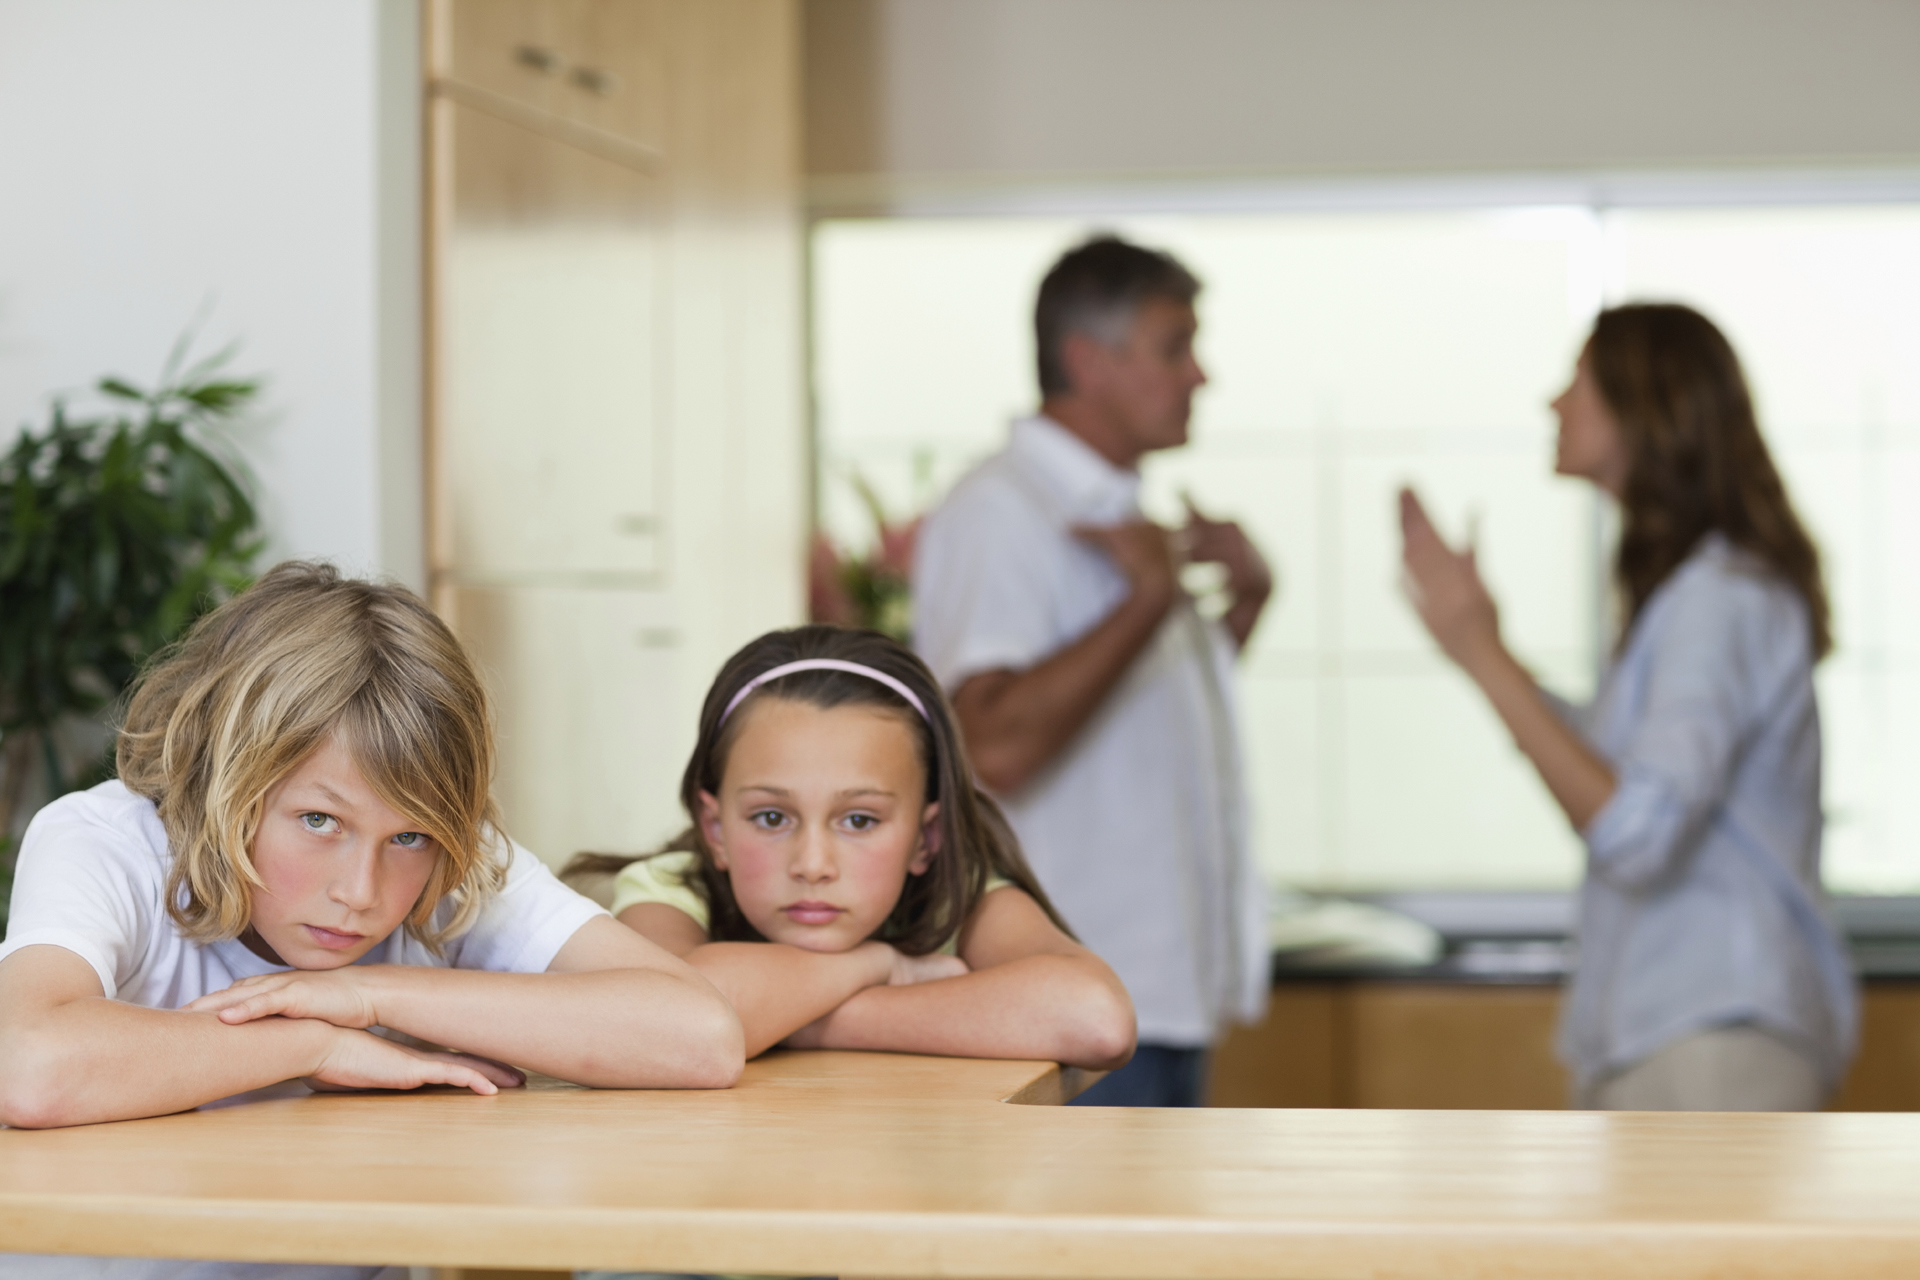 Don't let your children suffer your marital problems